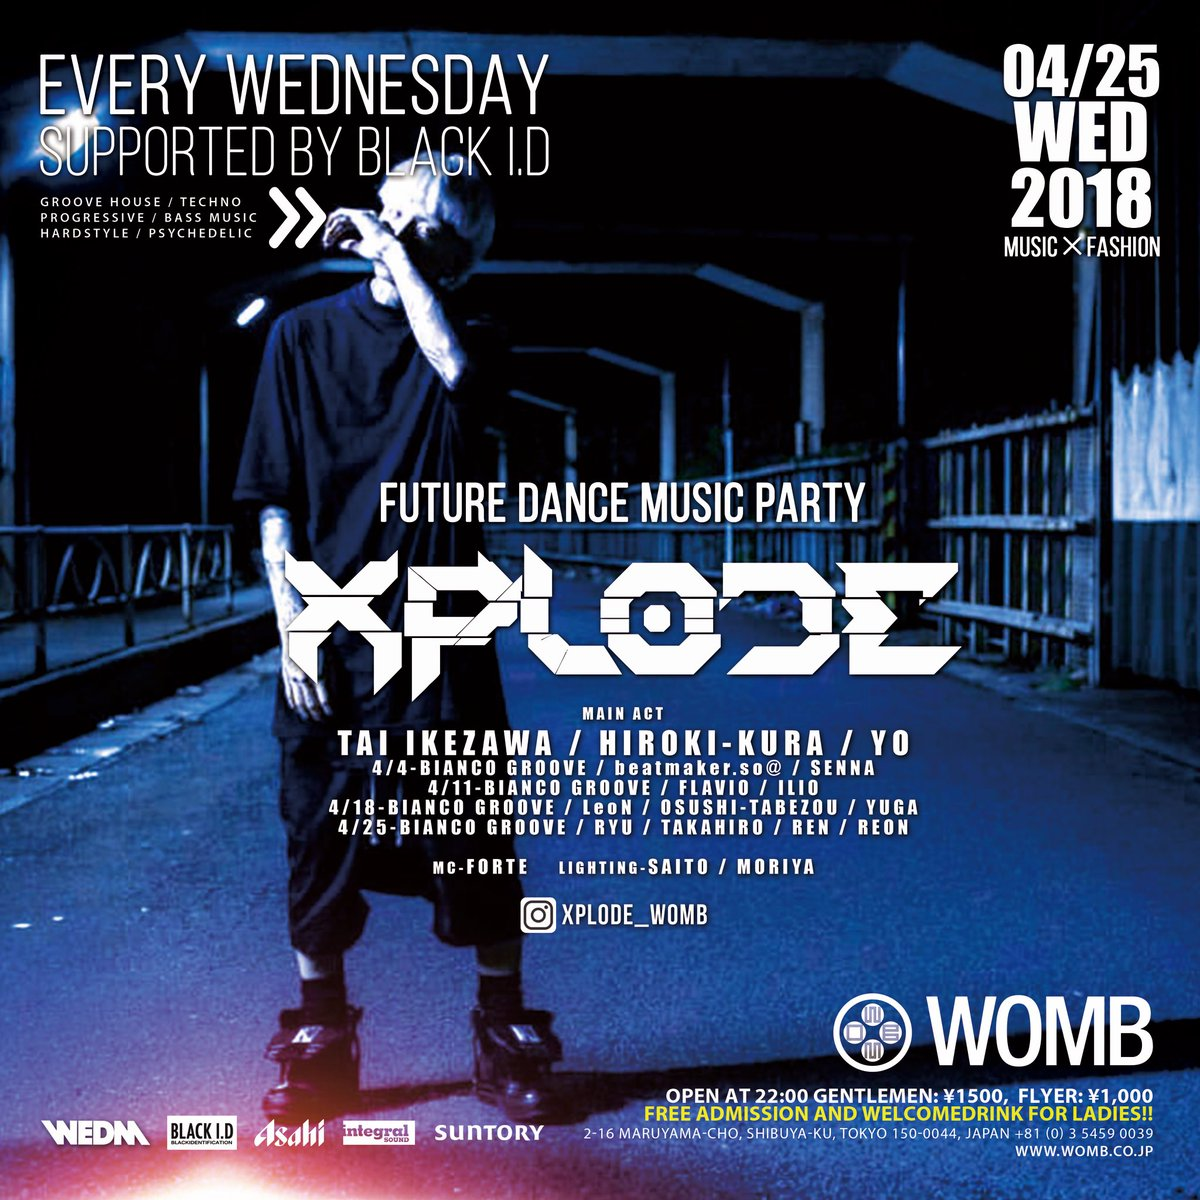 NEXT4/25(WED)  #MUSIC ✖︎ #FASHION #PARTY XPLODE @WOMB_Tokyo (渋谷) Supported by BLACK I.D  Start 22:00 Entrance Free+Welcome Drink  #ファッショニスタ #美容師 #wombtokyo #shibuya #club #fashionista #house #bassmusic #edm #streetfashion<br>http://pic.twitter.com/7Q5dcRv5de